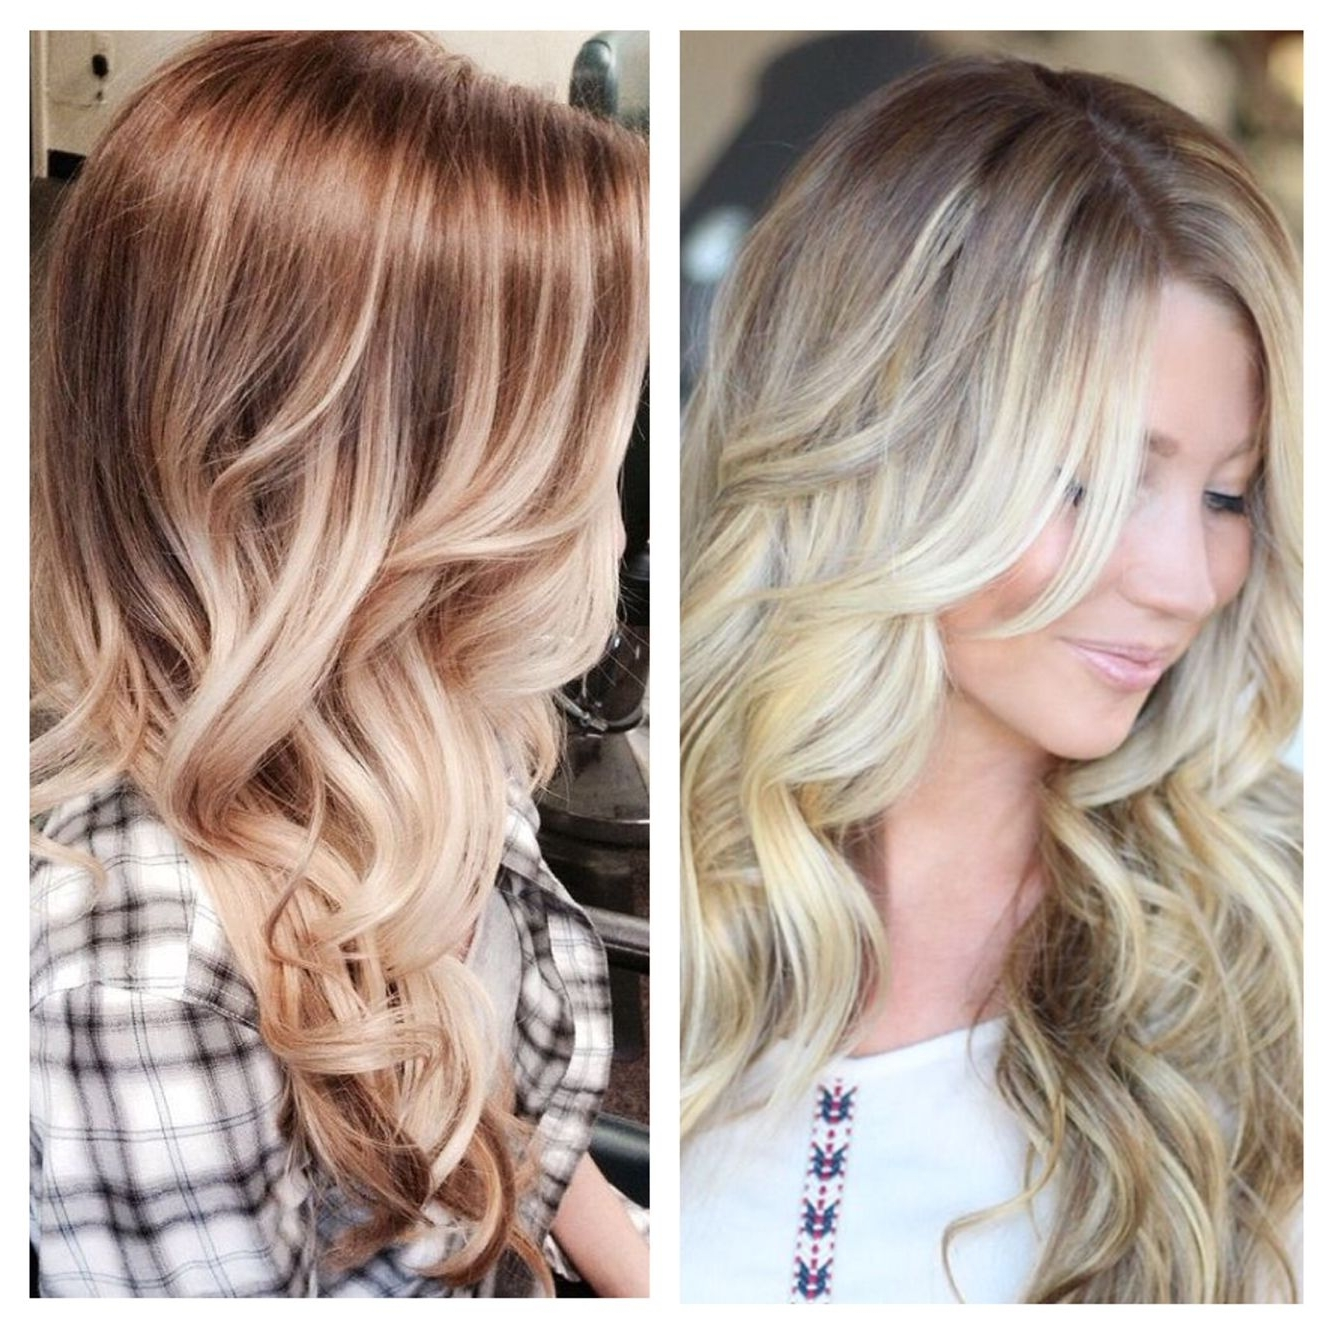 2017 Tortoiseshell Straight Blonde Hairstyles Within Cool Vs Warm Tortoise Shell Blondes I Currently Have Warm Blonde (View 8 of 20)